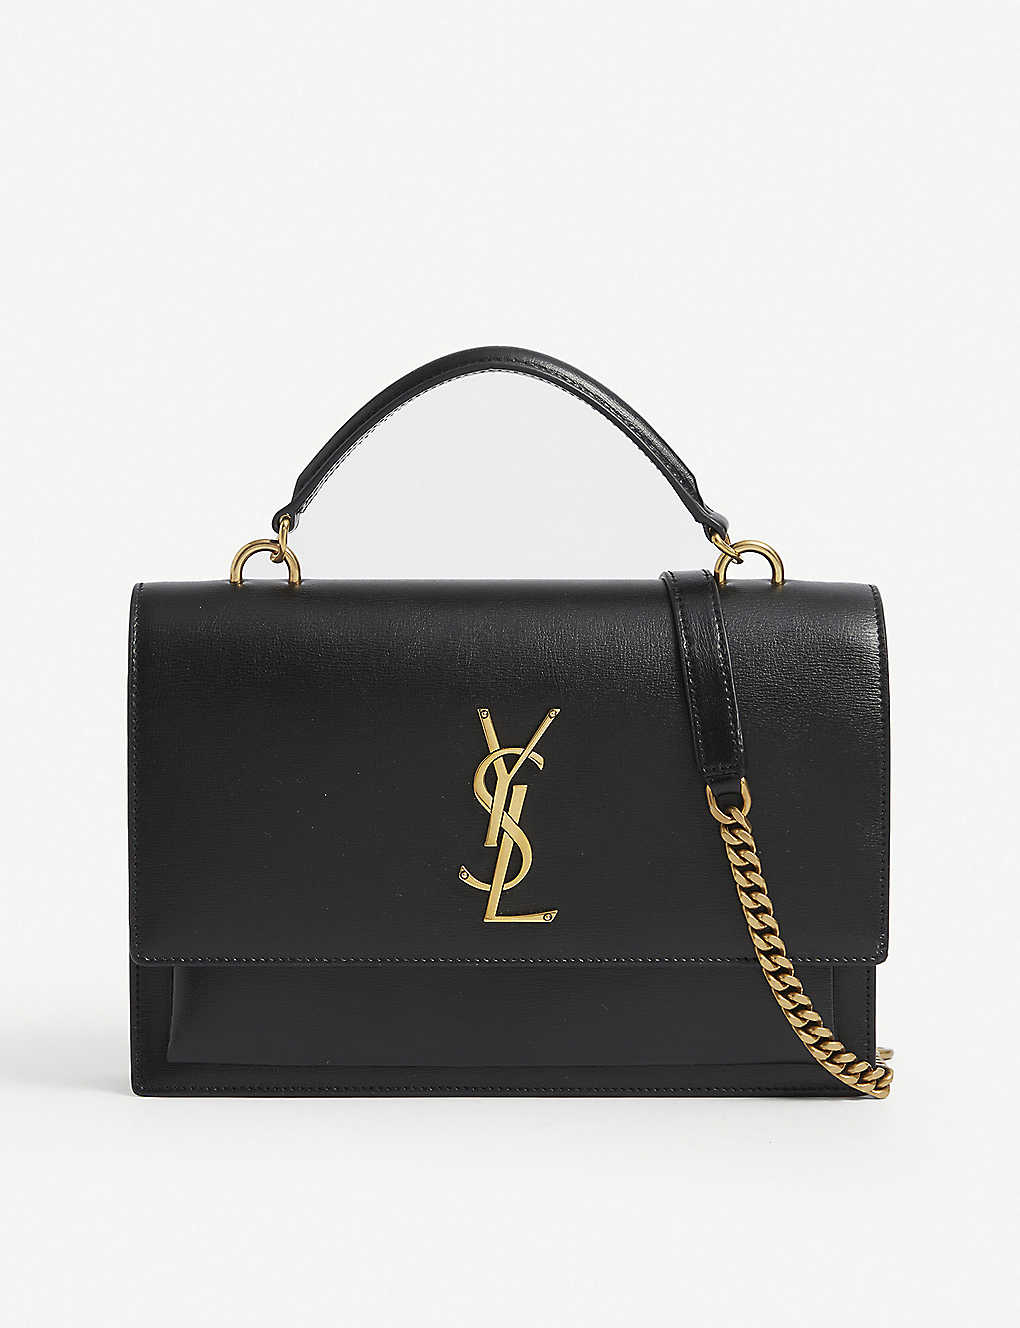 SAINT LAURENT: Sunset medium monogram leather shoulder bag